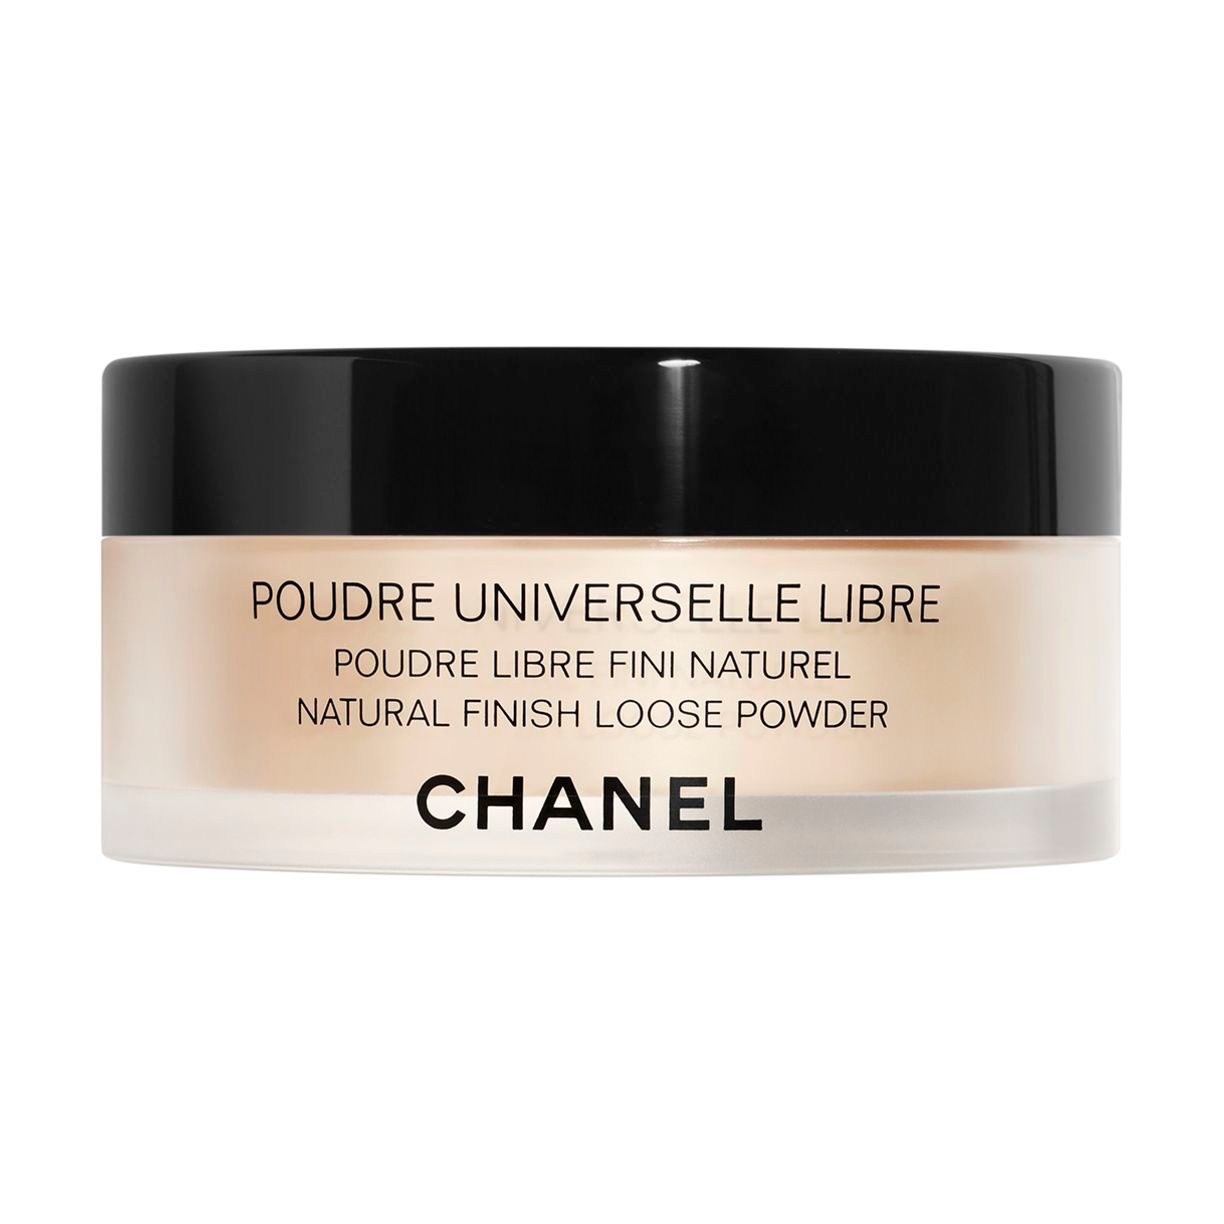 POUDRE UNIVERSELLE LIBRE NATURAL FINISH LOOSE POWDER 30 NATUREL - TRANSLUCENT 2 30G